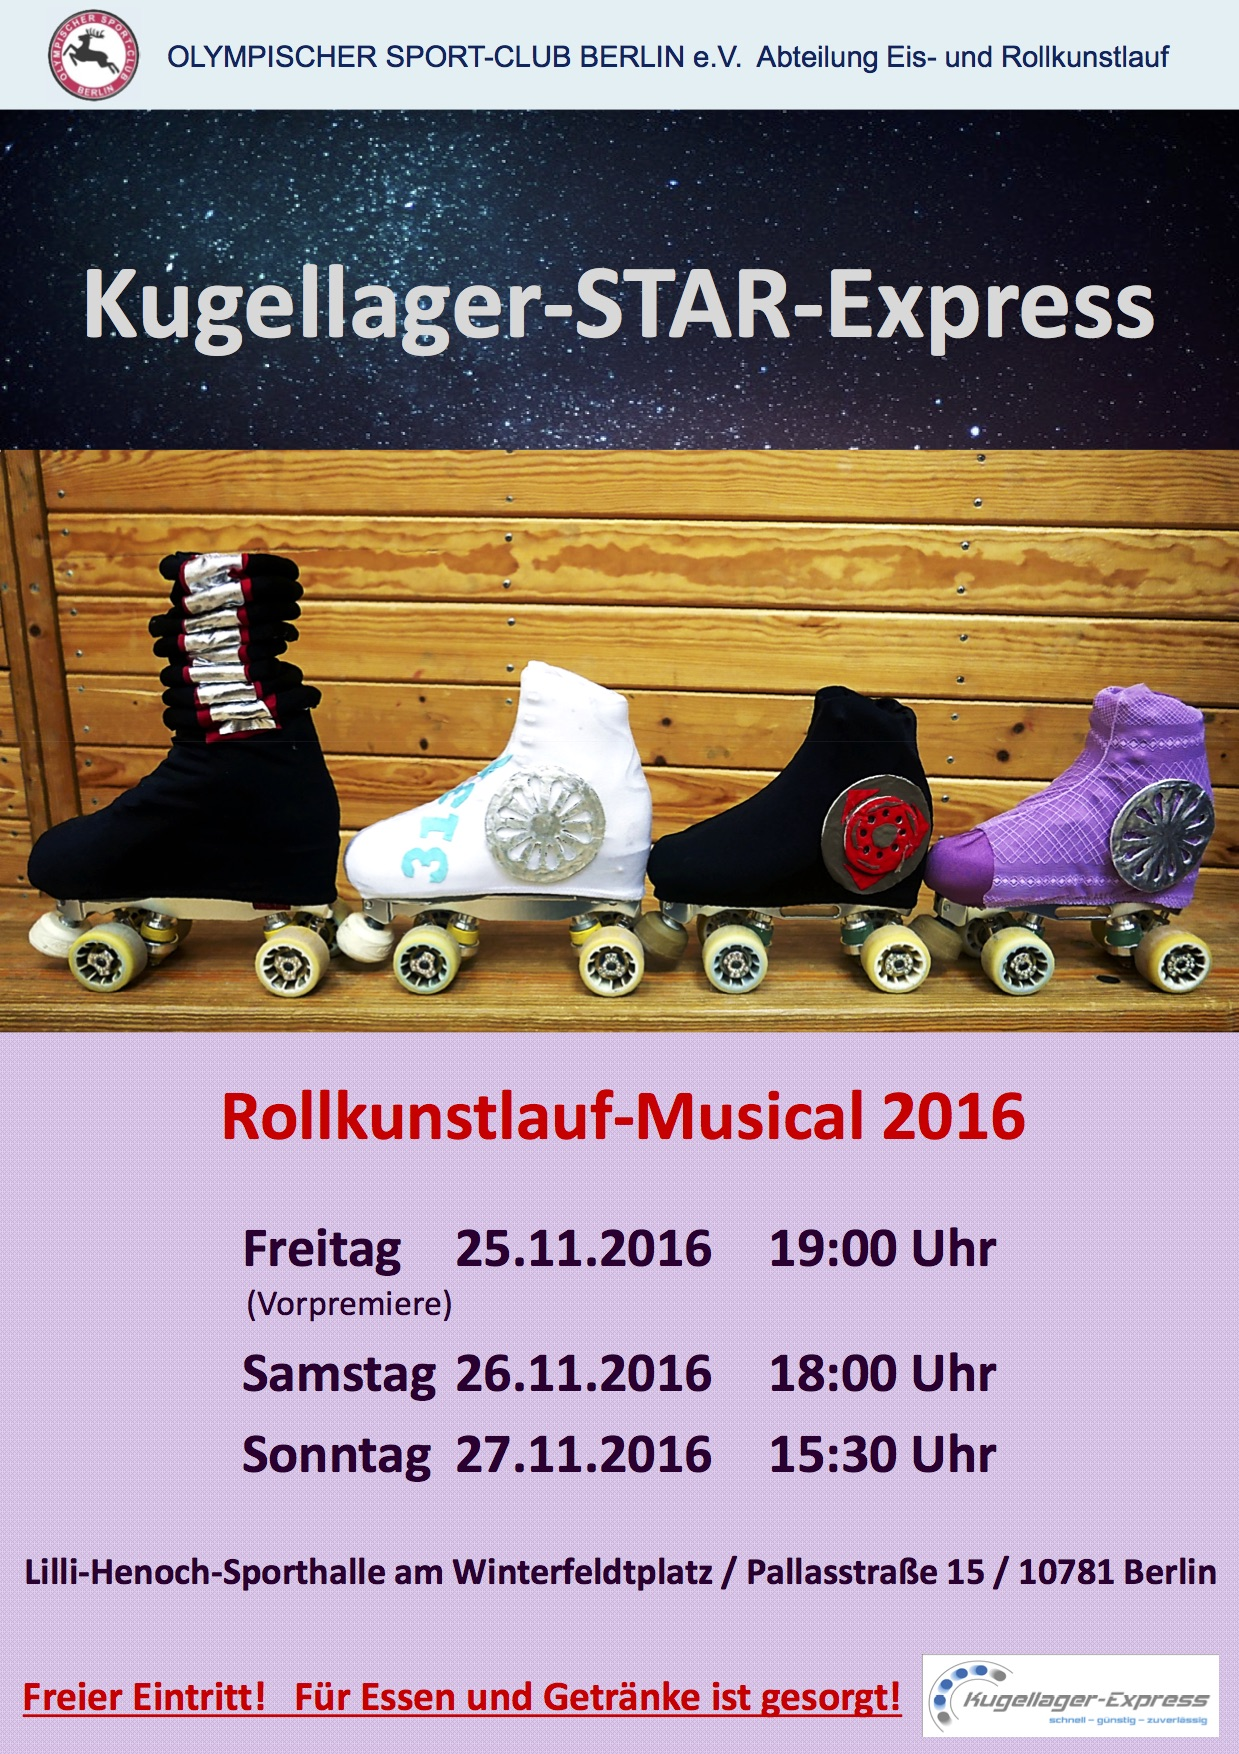 25, 26 e 27.11.2016: Musical sui pattini a rotelle: Kugellager-Star-Express ( ispirato a Starlight Express)